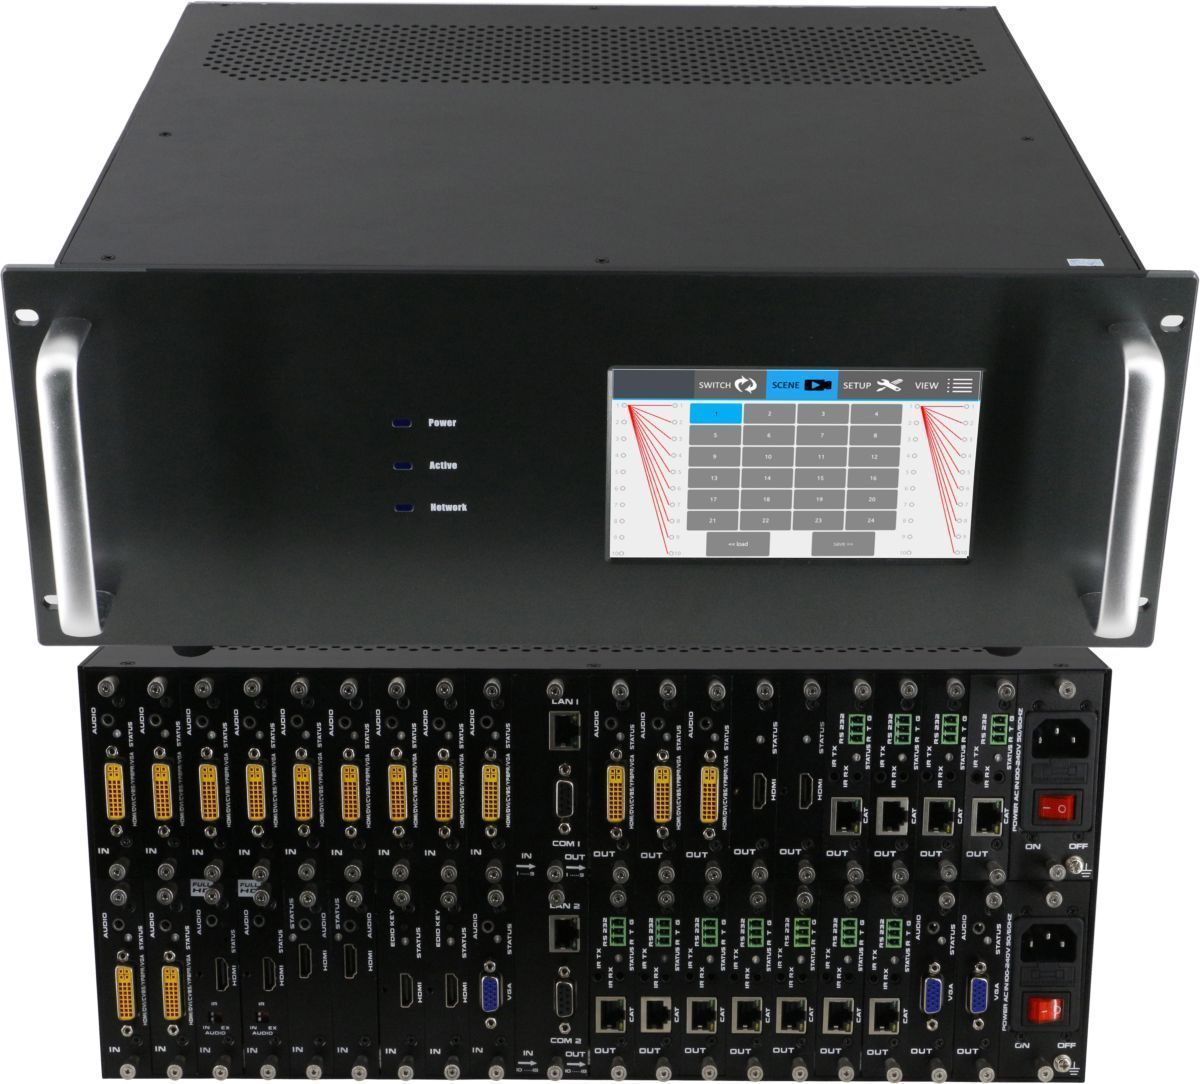 9x9 HDMI Matrix Switcher with a Touchscreen